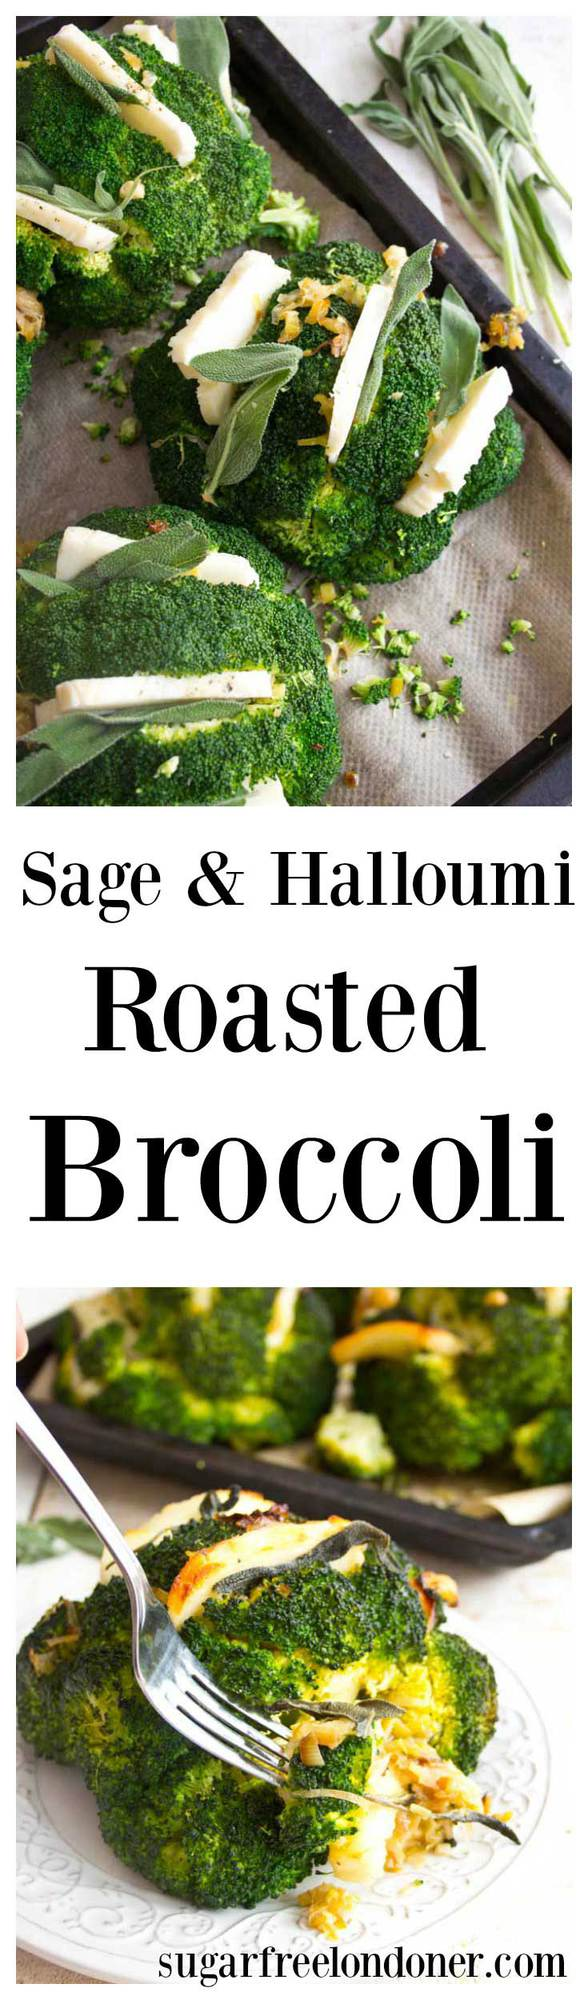 Sage and halloumi roasted broccoli heads with caramelised leeks is a light and flavourful lunch dish. Ready in under 30 minutes!